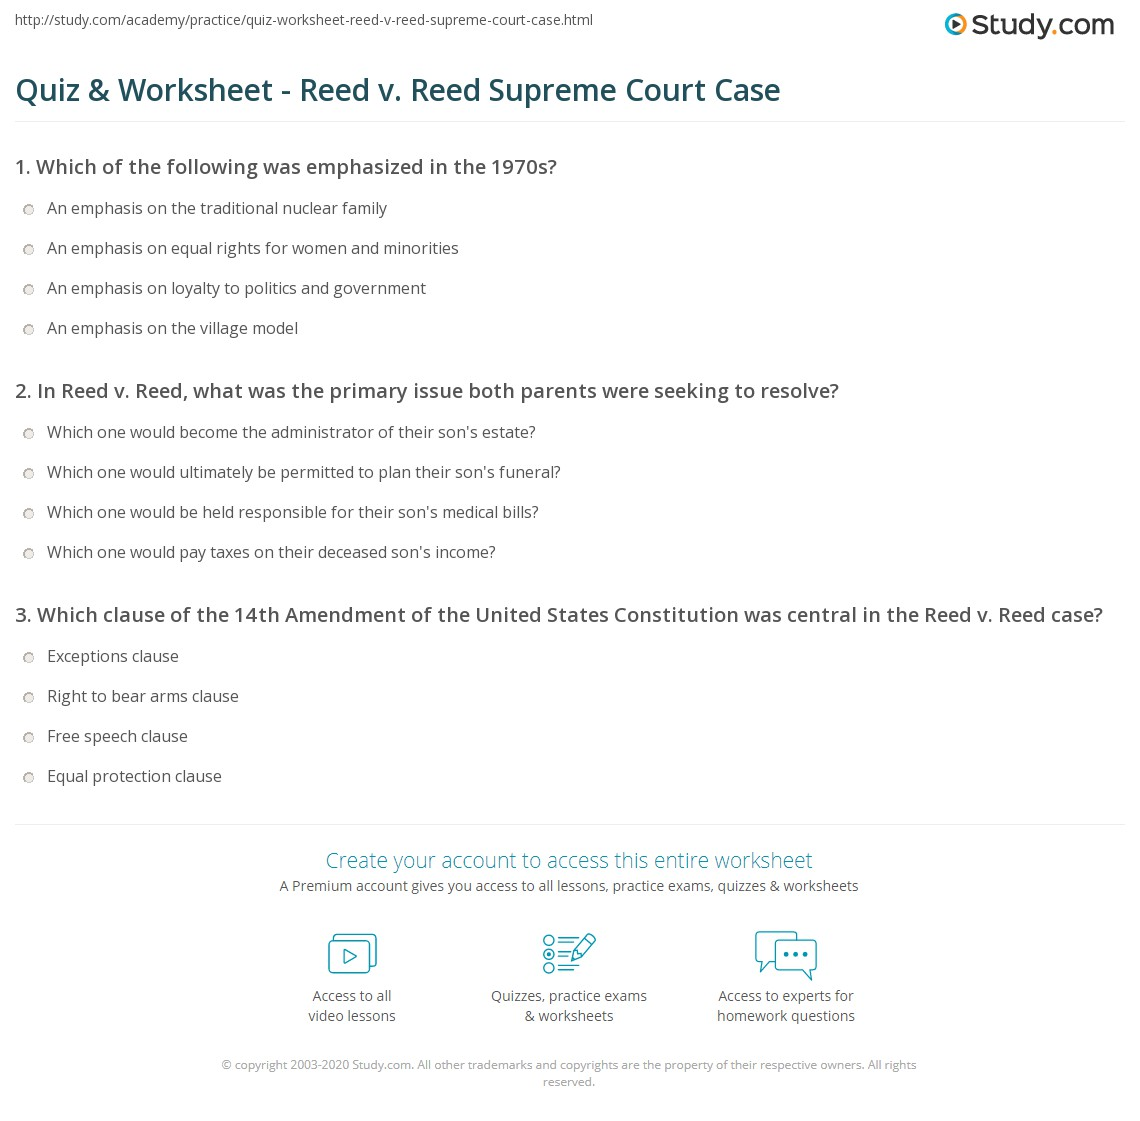 quiz worksheet reed v reed supreme court case. Black Bedroom Furniture Sets. Home Design Ideas